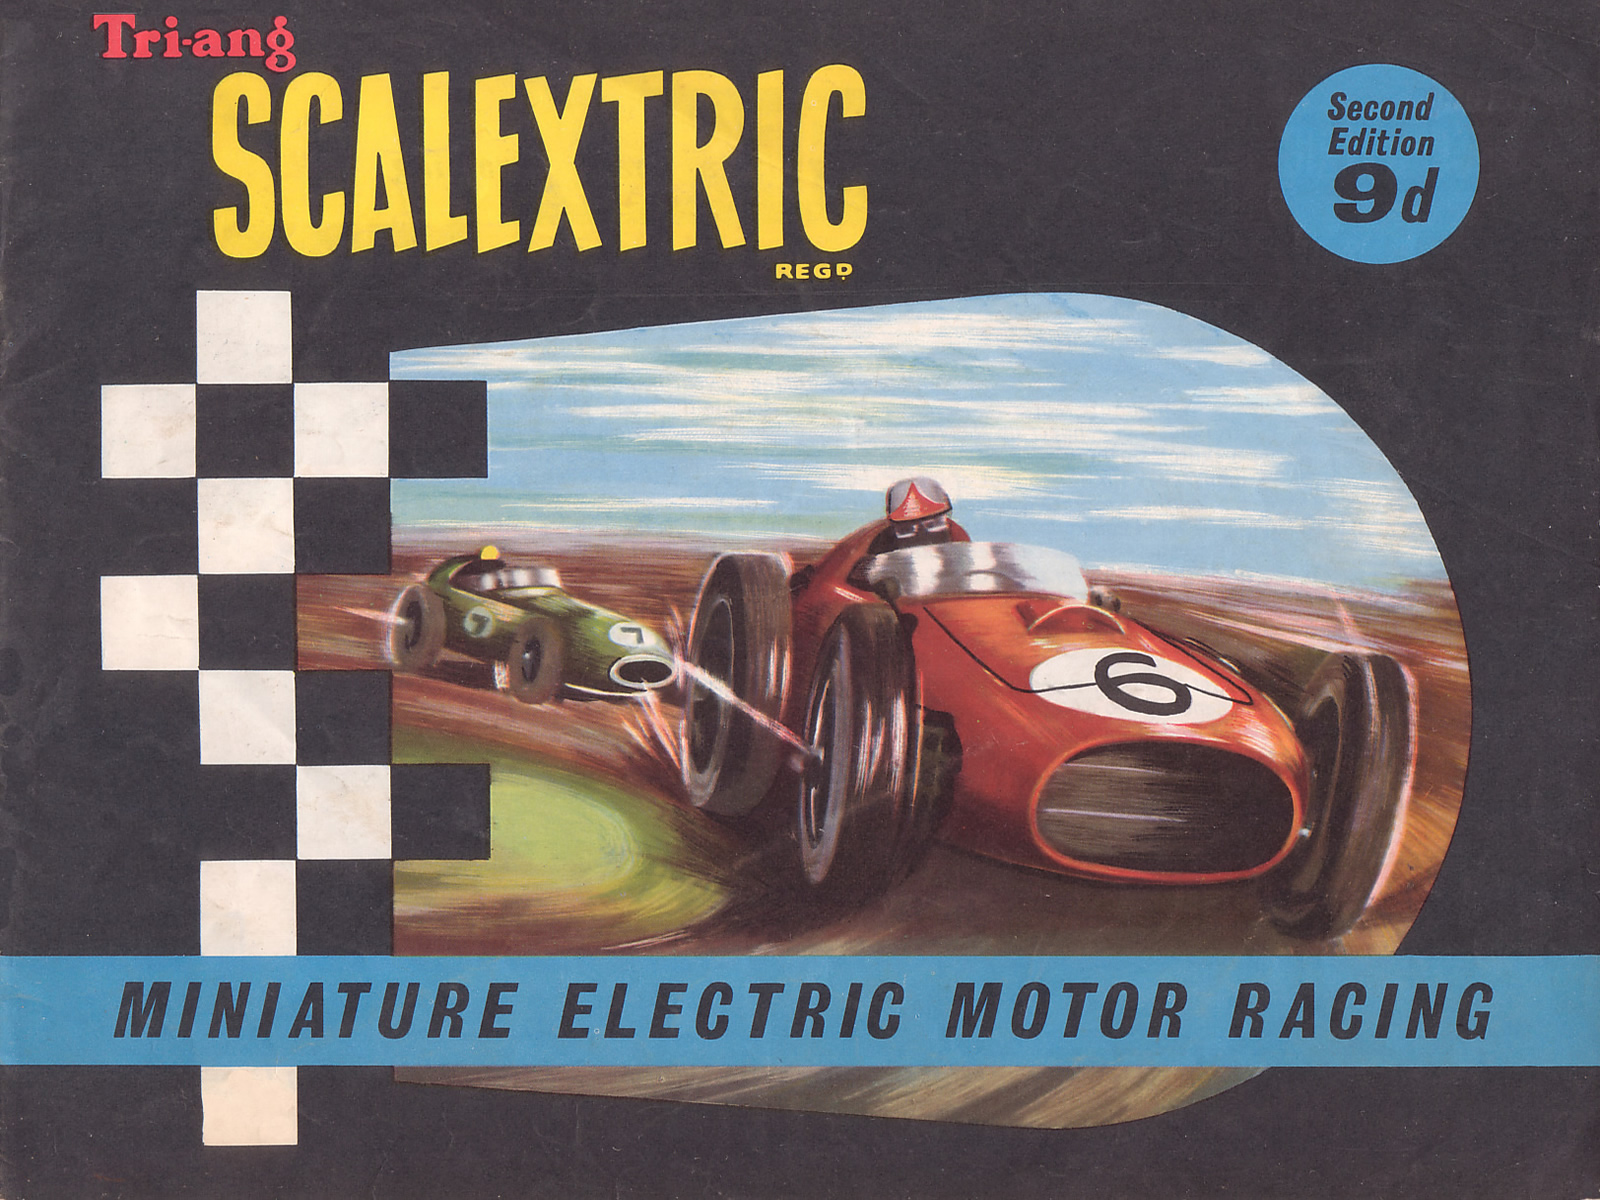 tri-ang_scalextrics_miniture_electric_motor_racing_catalog_brochures_and_catalogs_6b150fca-9237-4d44-b97d-015d9638457f_1.jpg